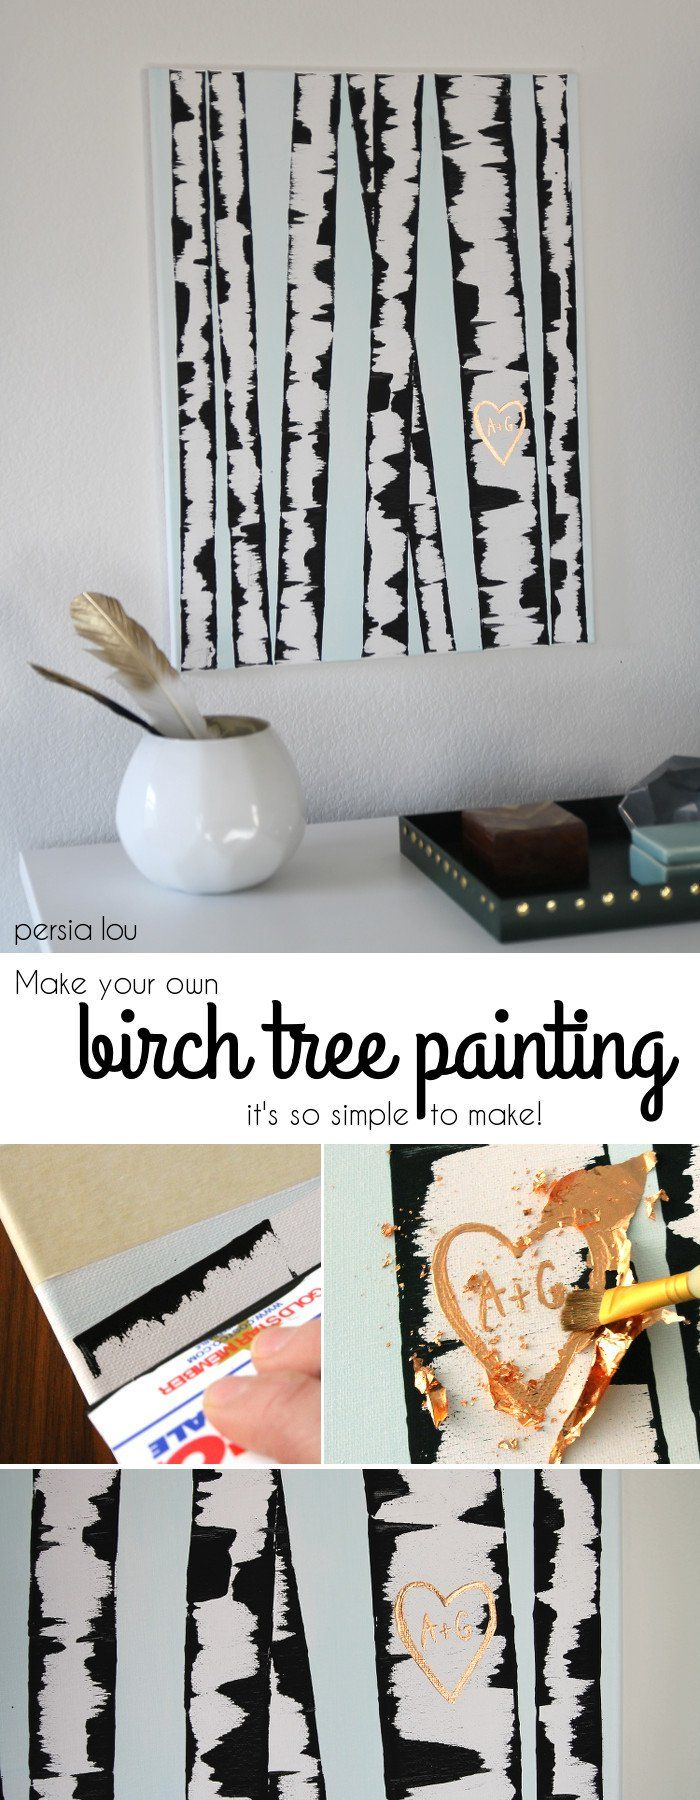 Easy Wall Art Ideas Diy wall art Easy diy crafts and Diy wall